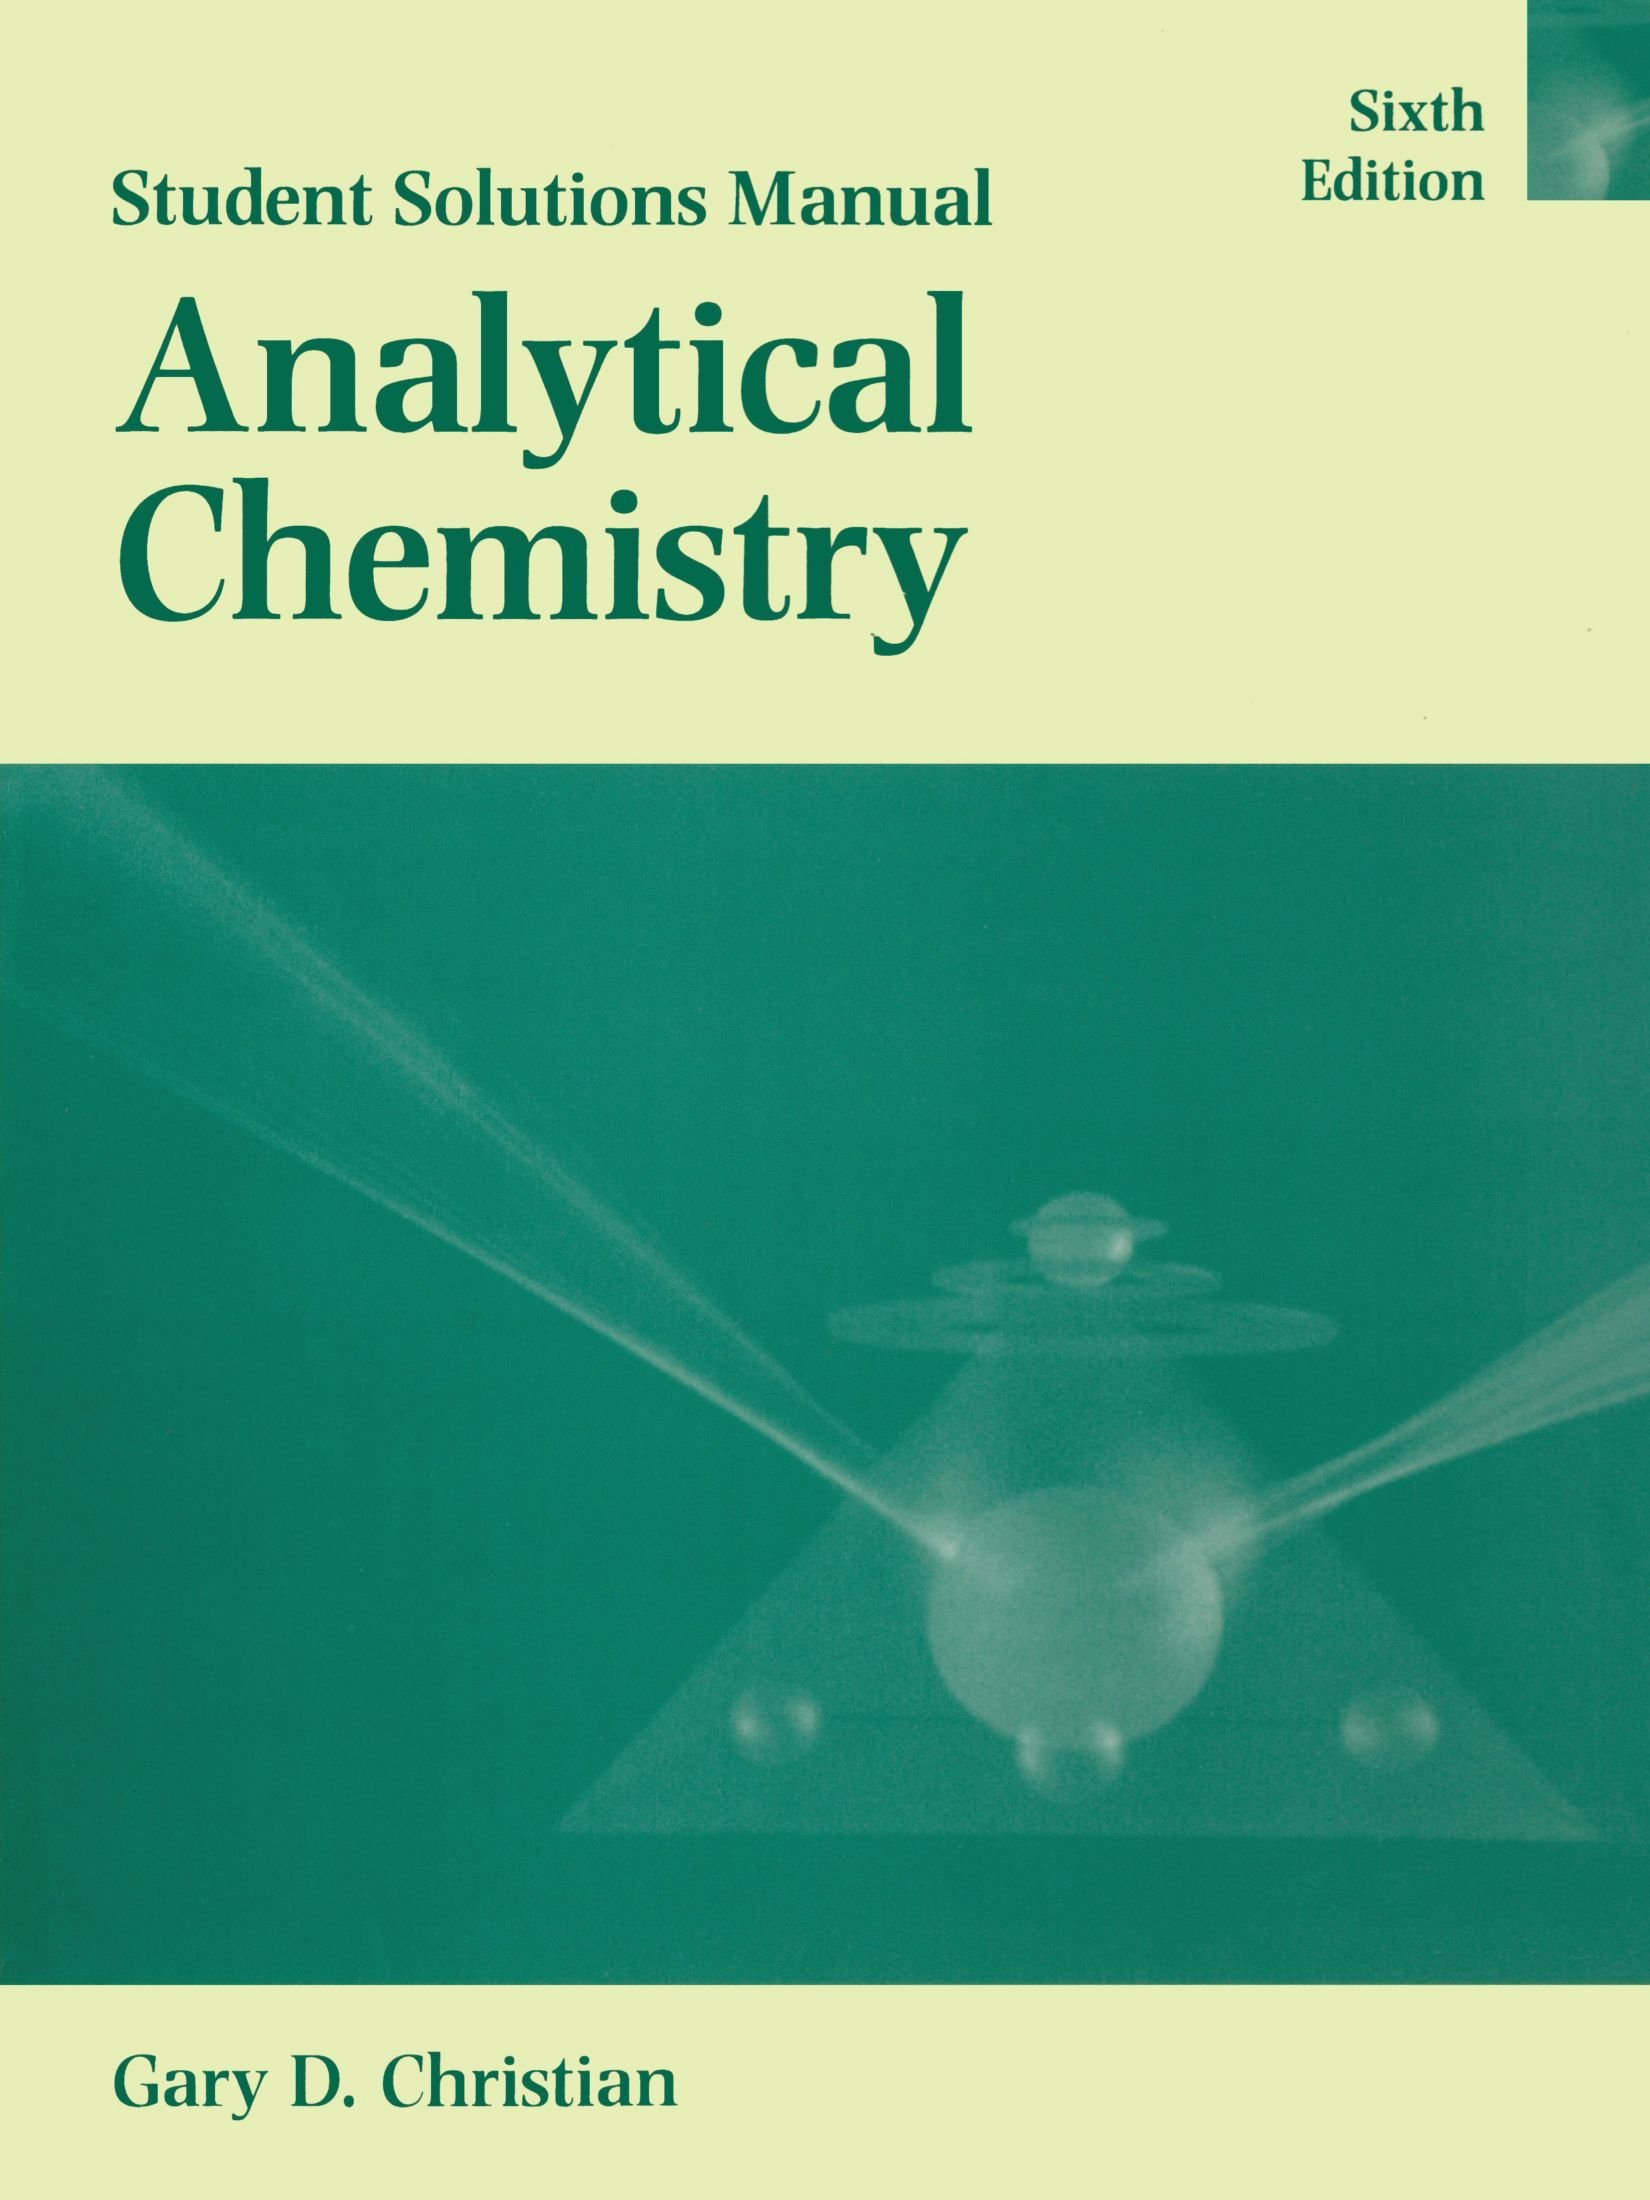 Analytical Chemistry, Student Solutions Manual: Gary D. Christian:  9780471268444: Books - Amazon.ca